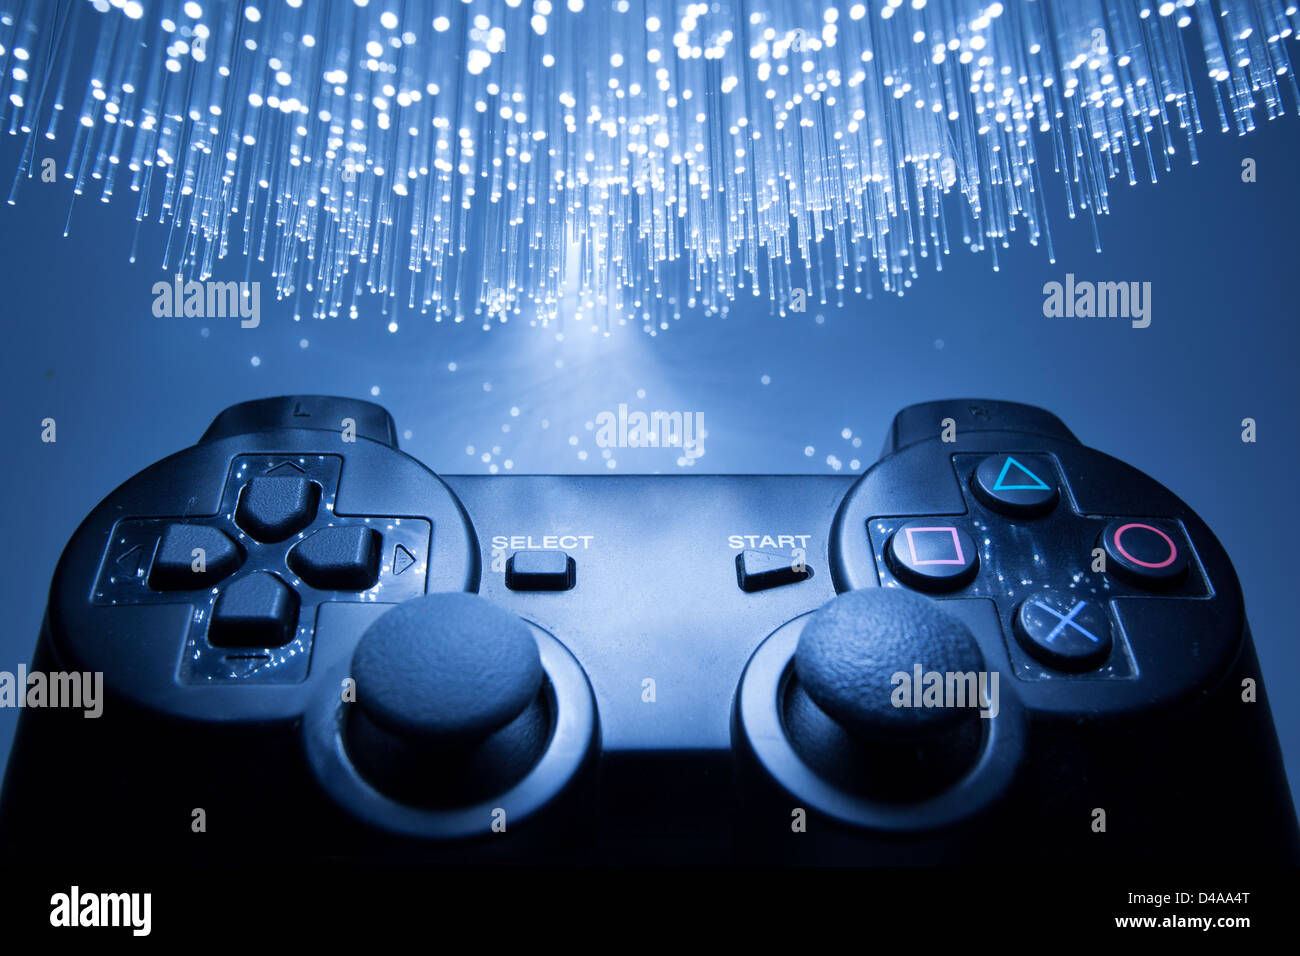 Game controller and blue light - Stock Image